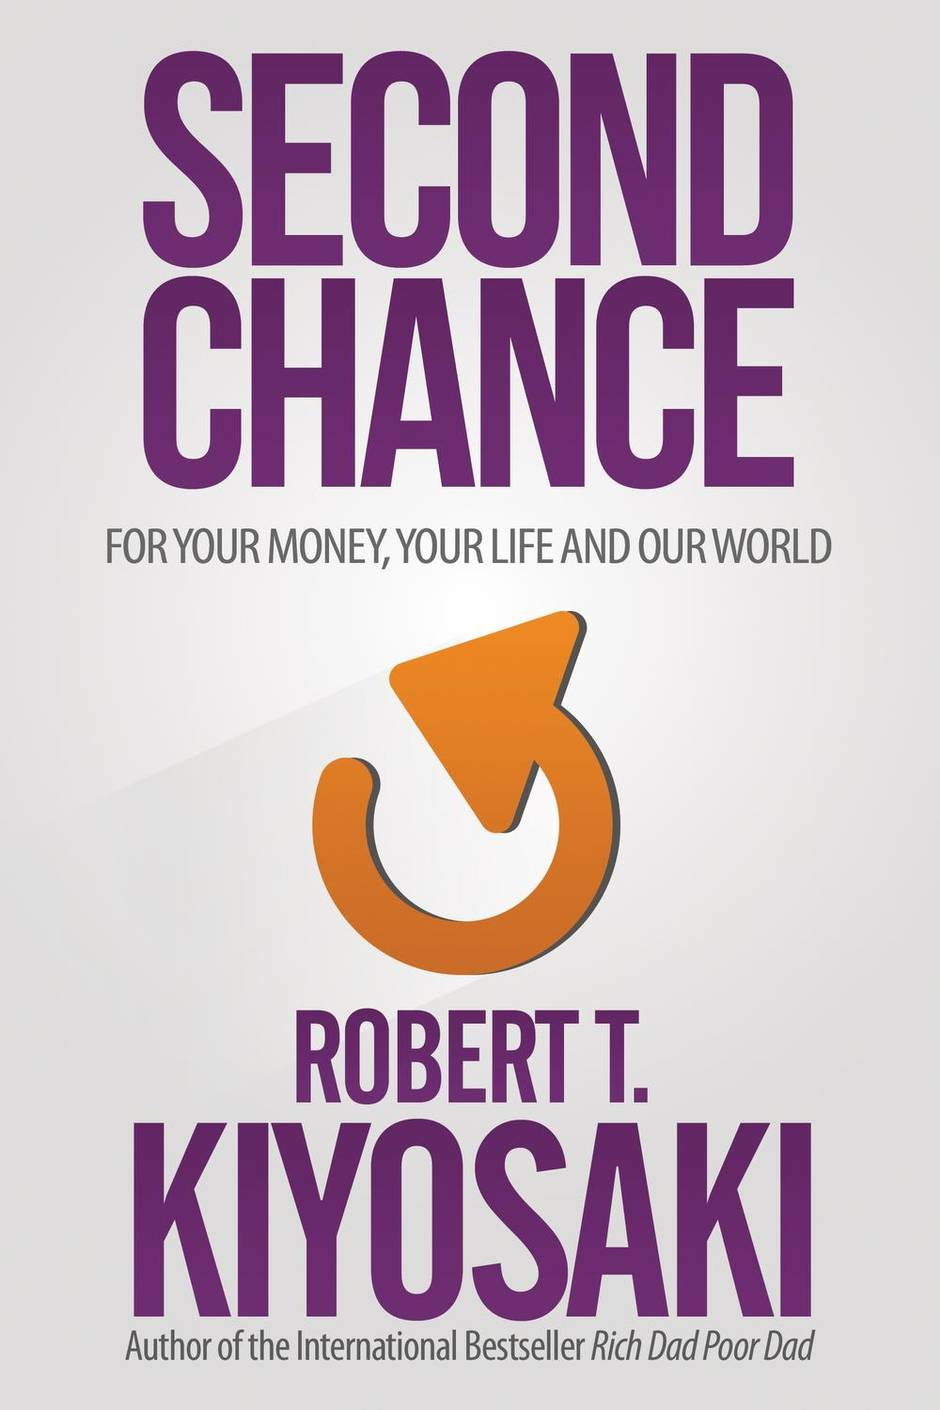 Robert Kiyosaki Second Chance book cover